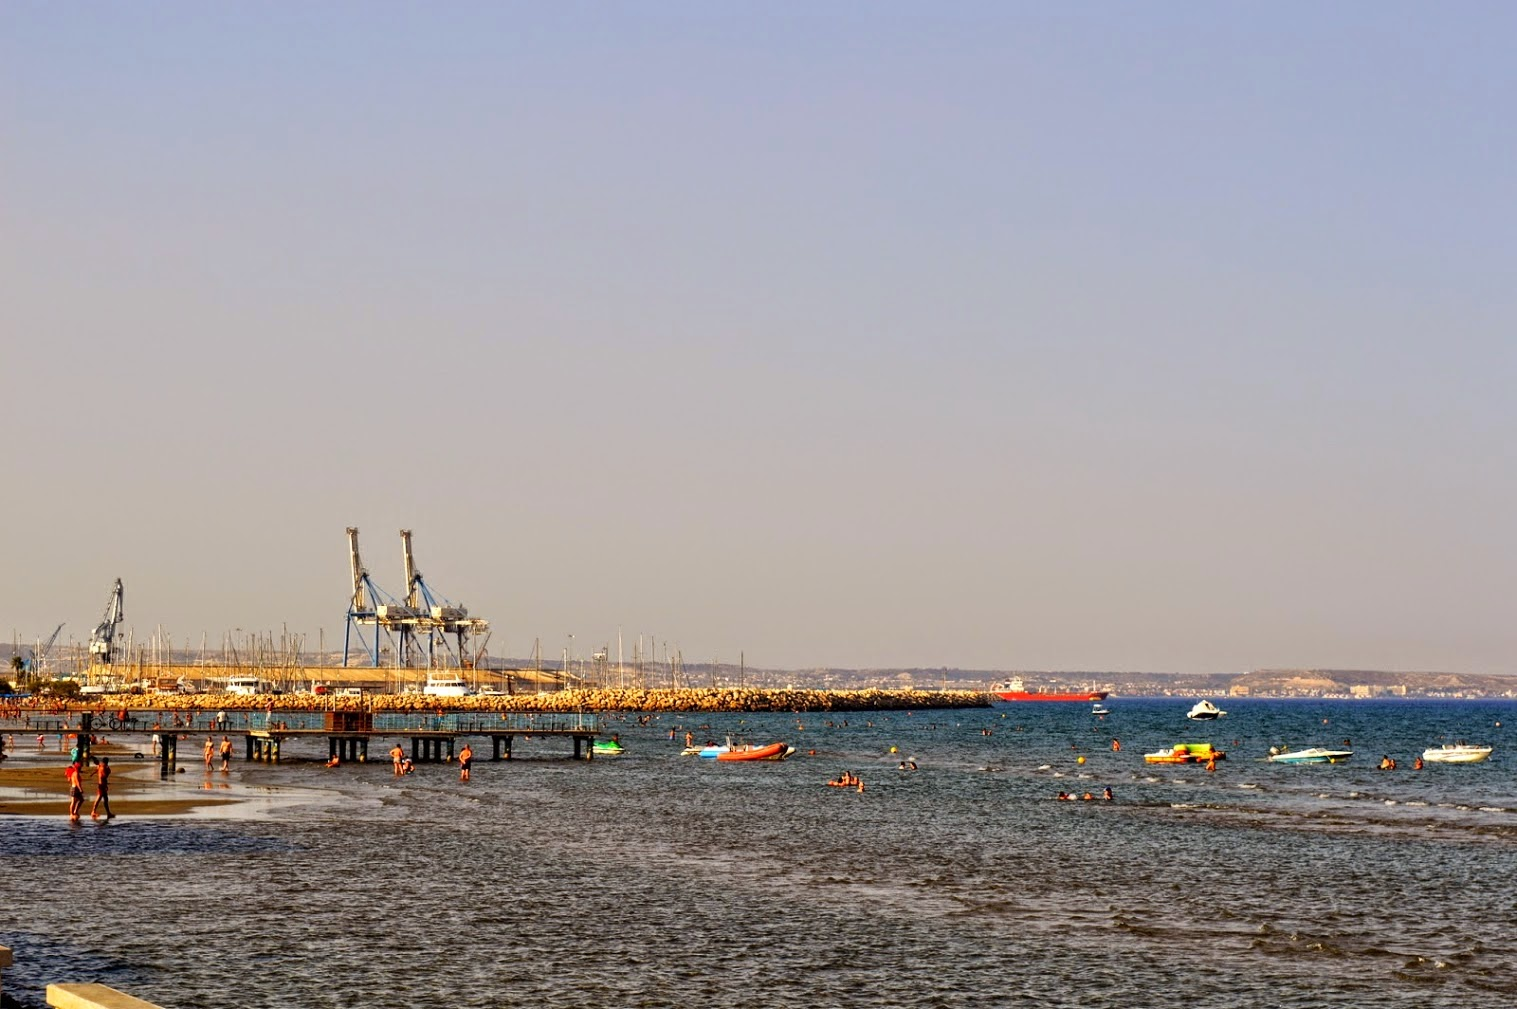 Larnaca Beach and Port in Cyprus.